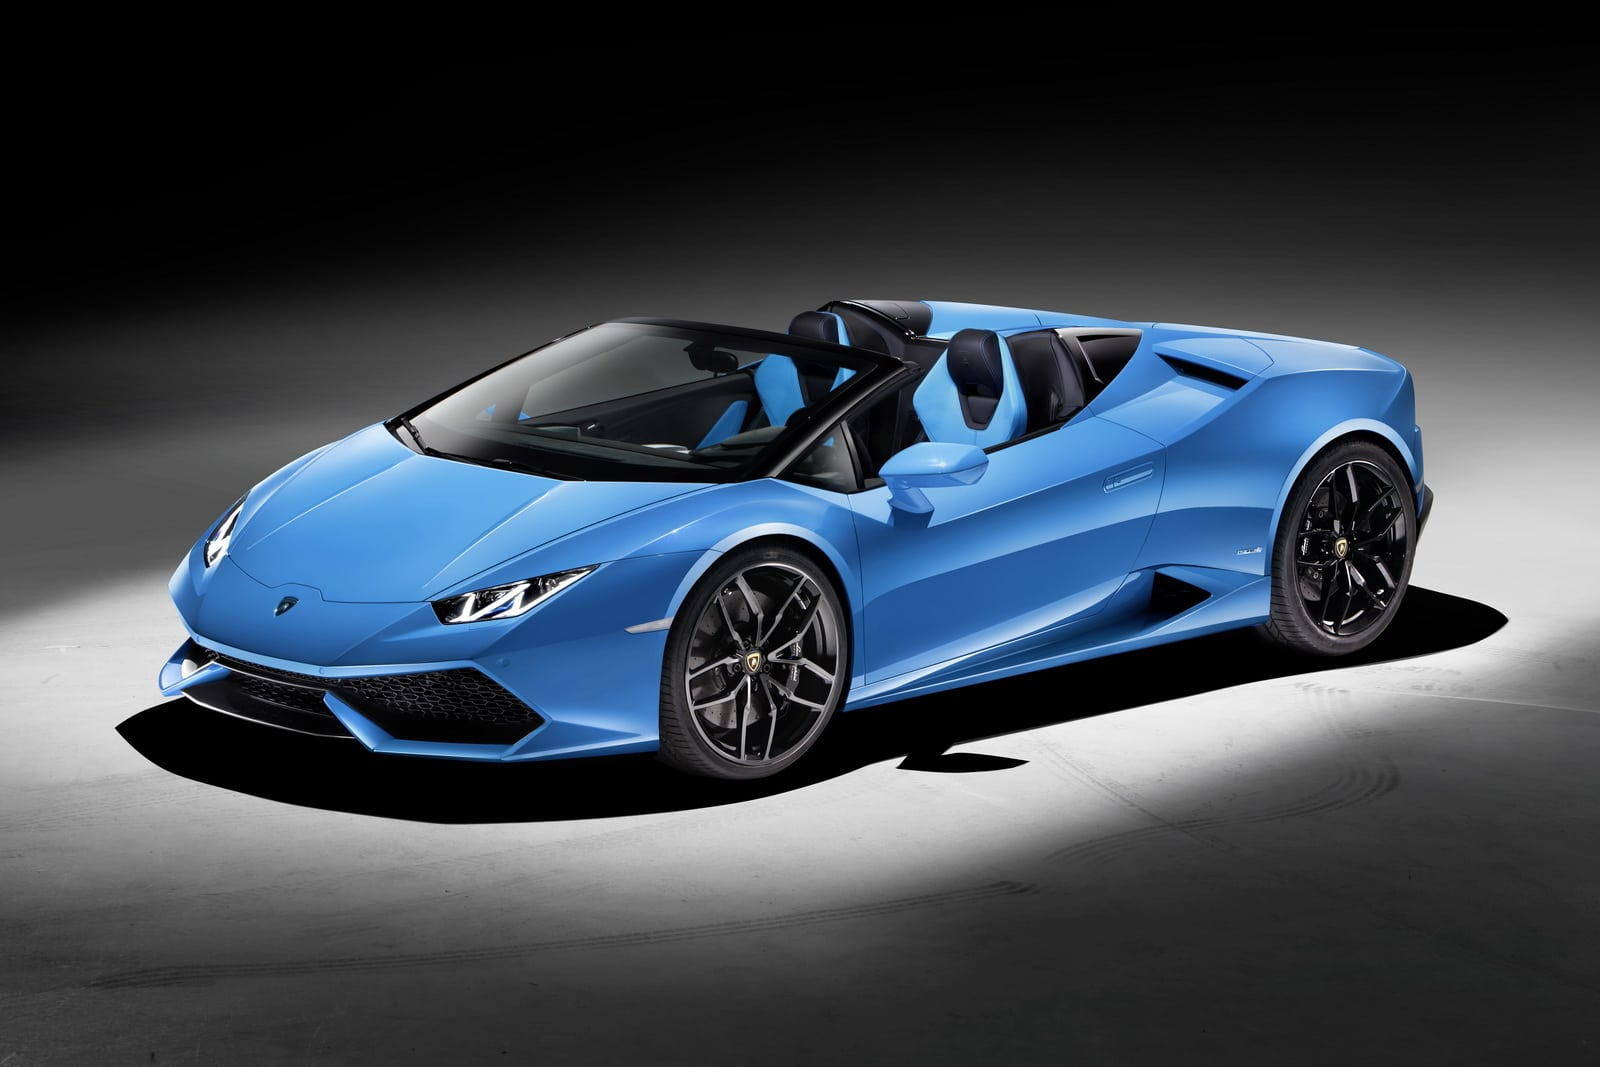 lamborghini huracan spyder un toit en toile et quelques am liorations. Black Bedroom Furniture Sets. Home Design Ideas